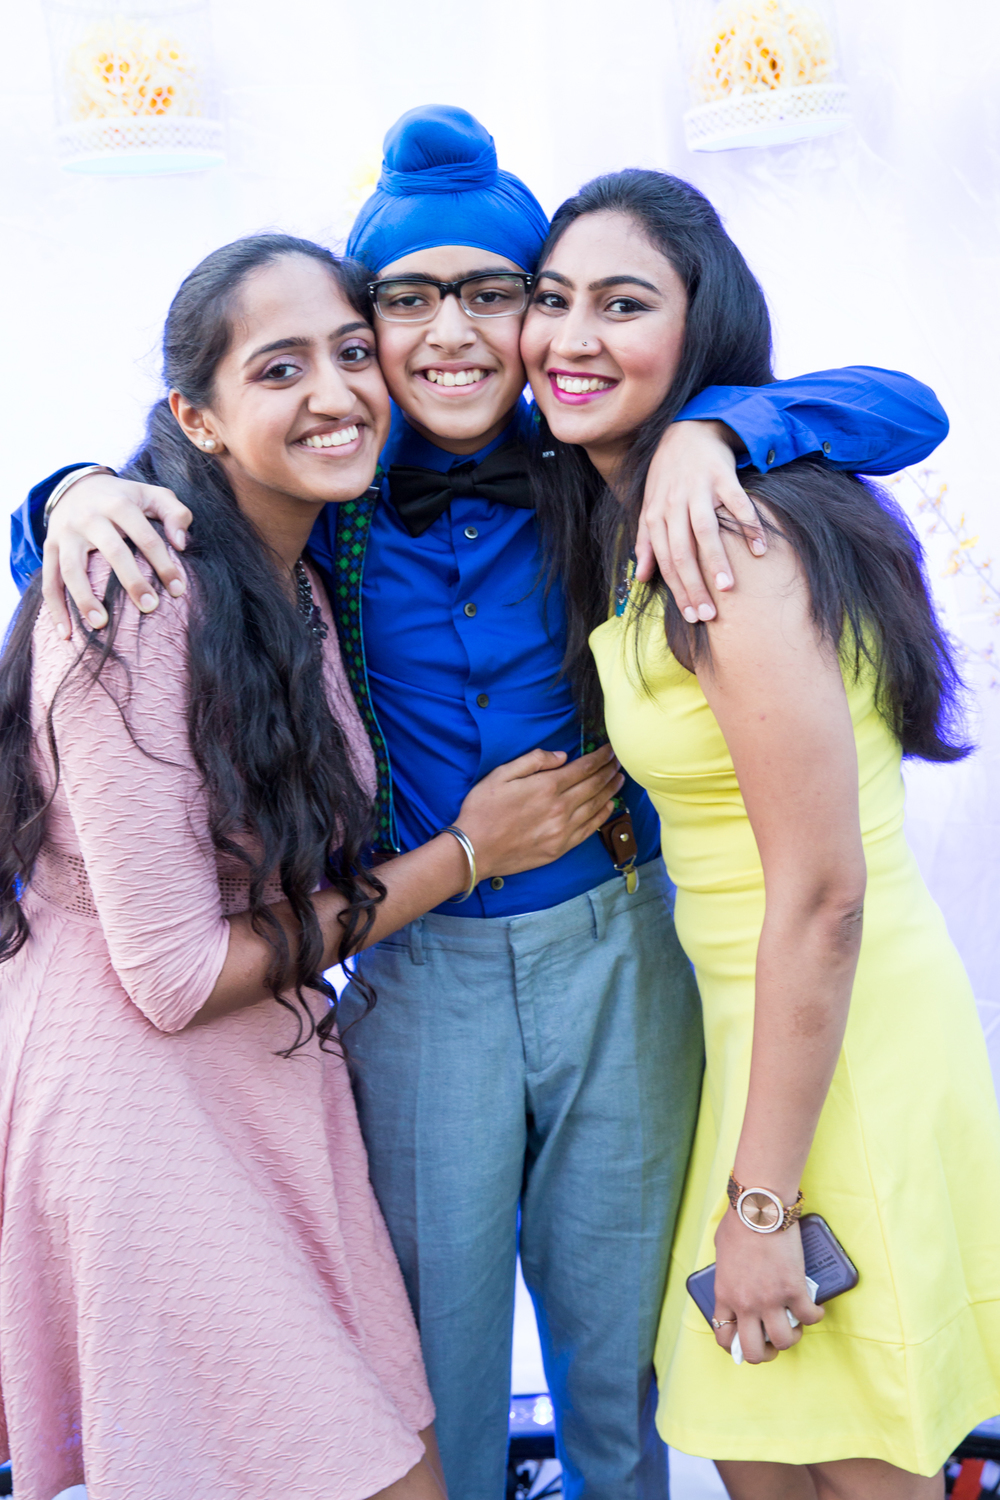 21-William Hendra Photography Singh Graduation Party.jpg